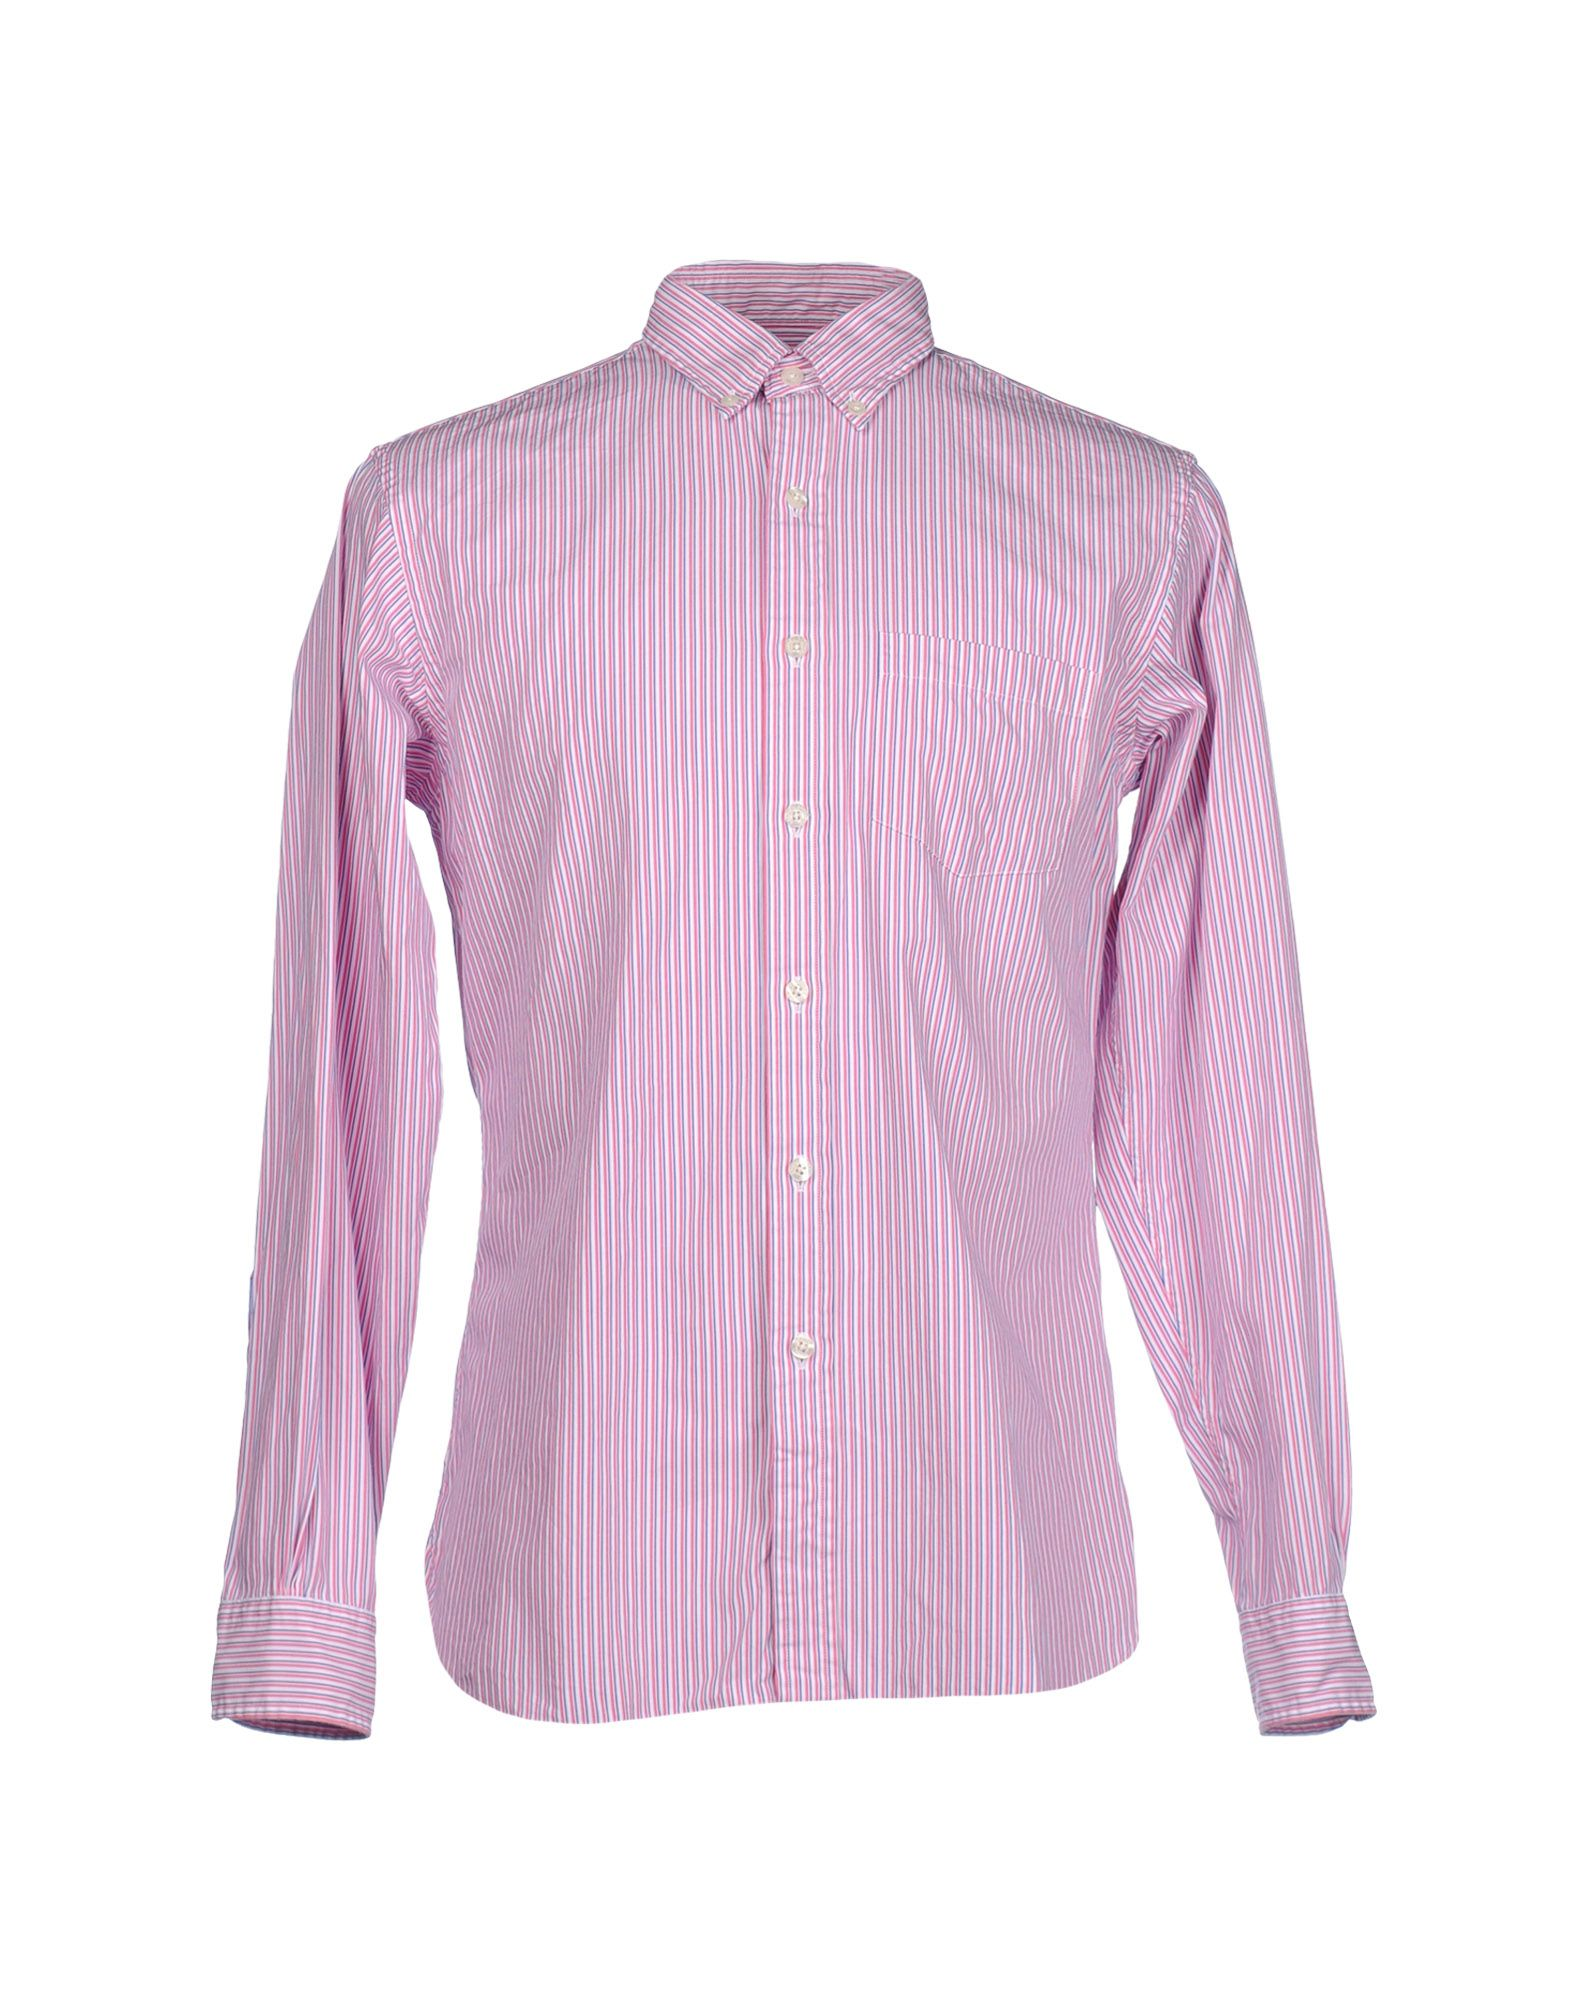 Brooks brothers long sleeve shirt in purple for men light Light purple dress shirt men